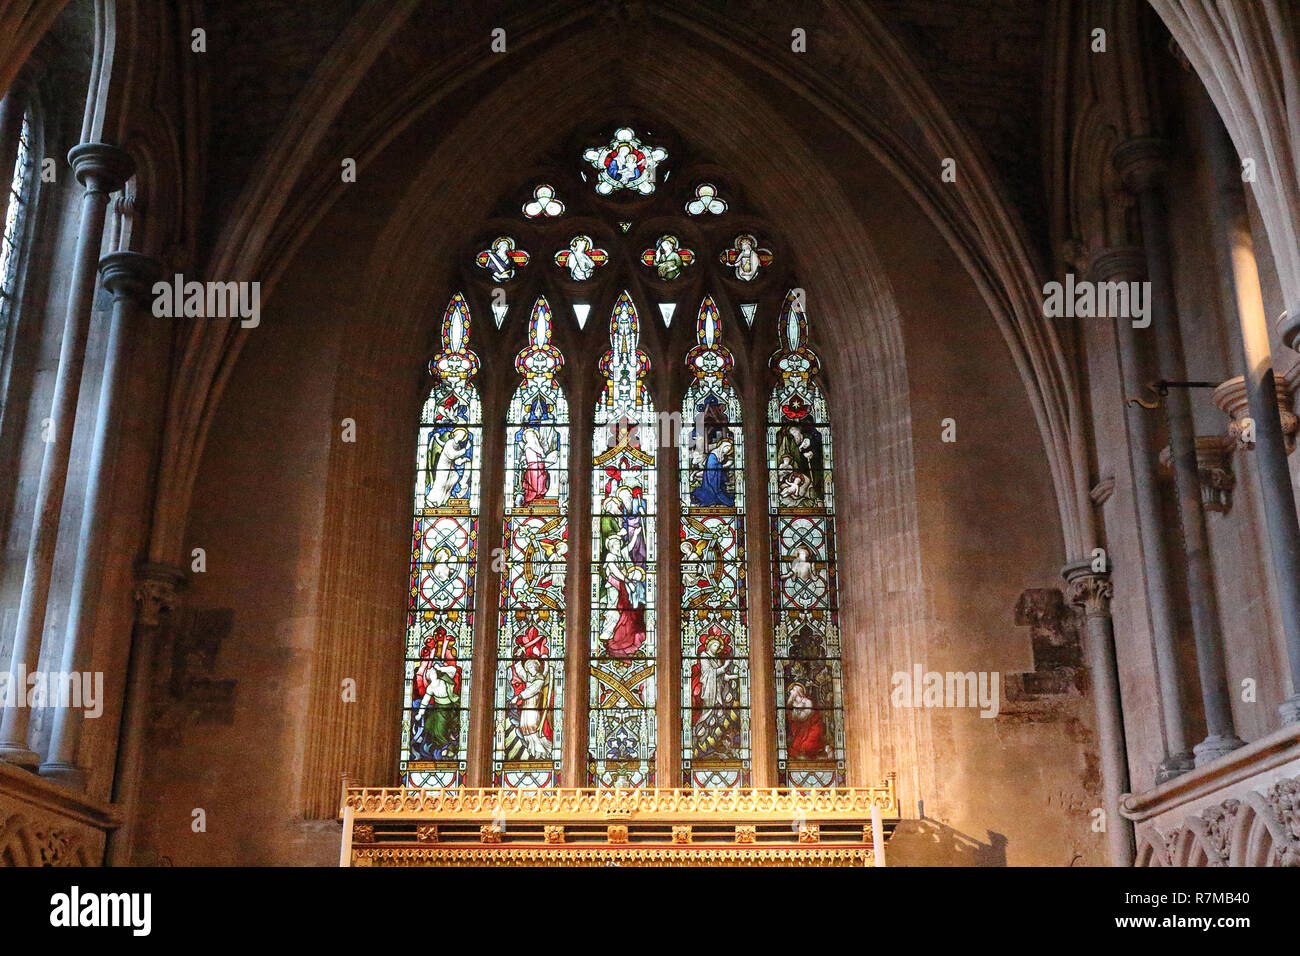 A pointed arch, stained glass window with Gothic decorations